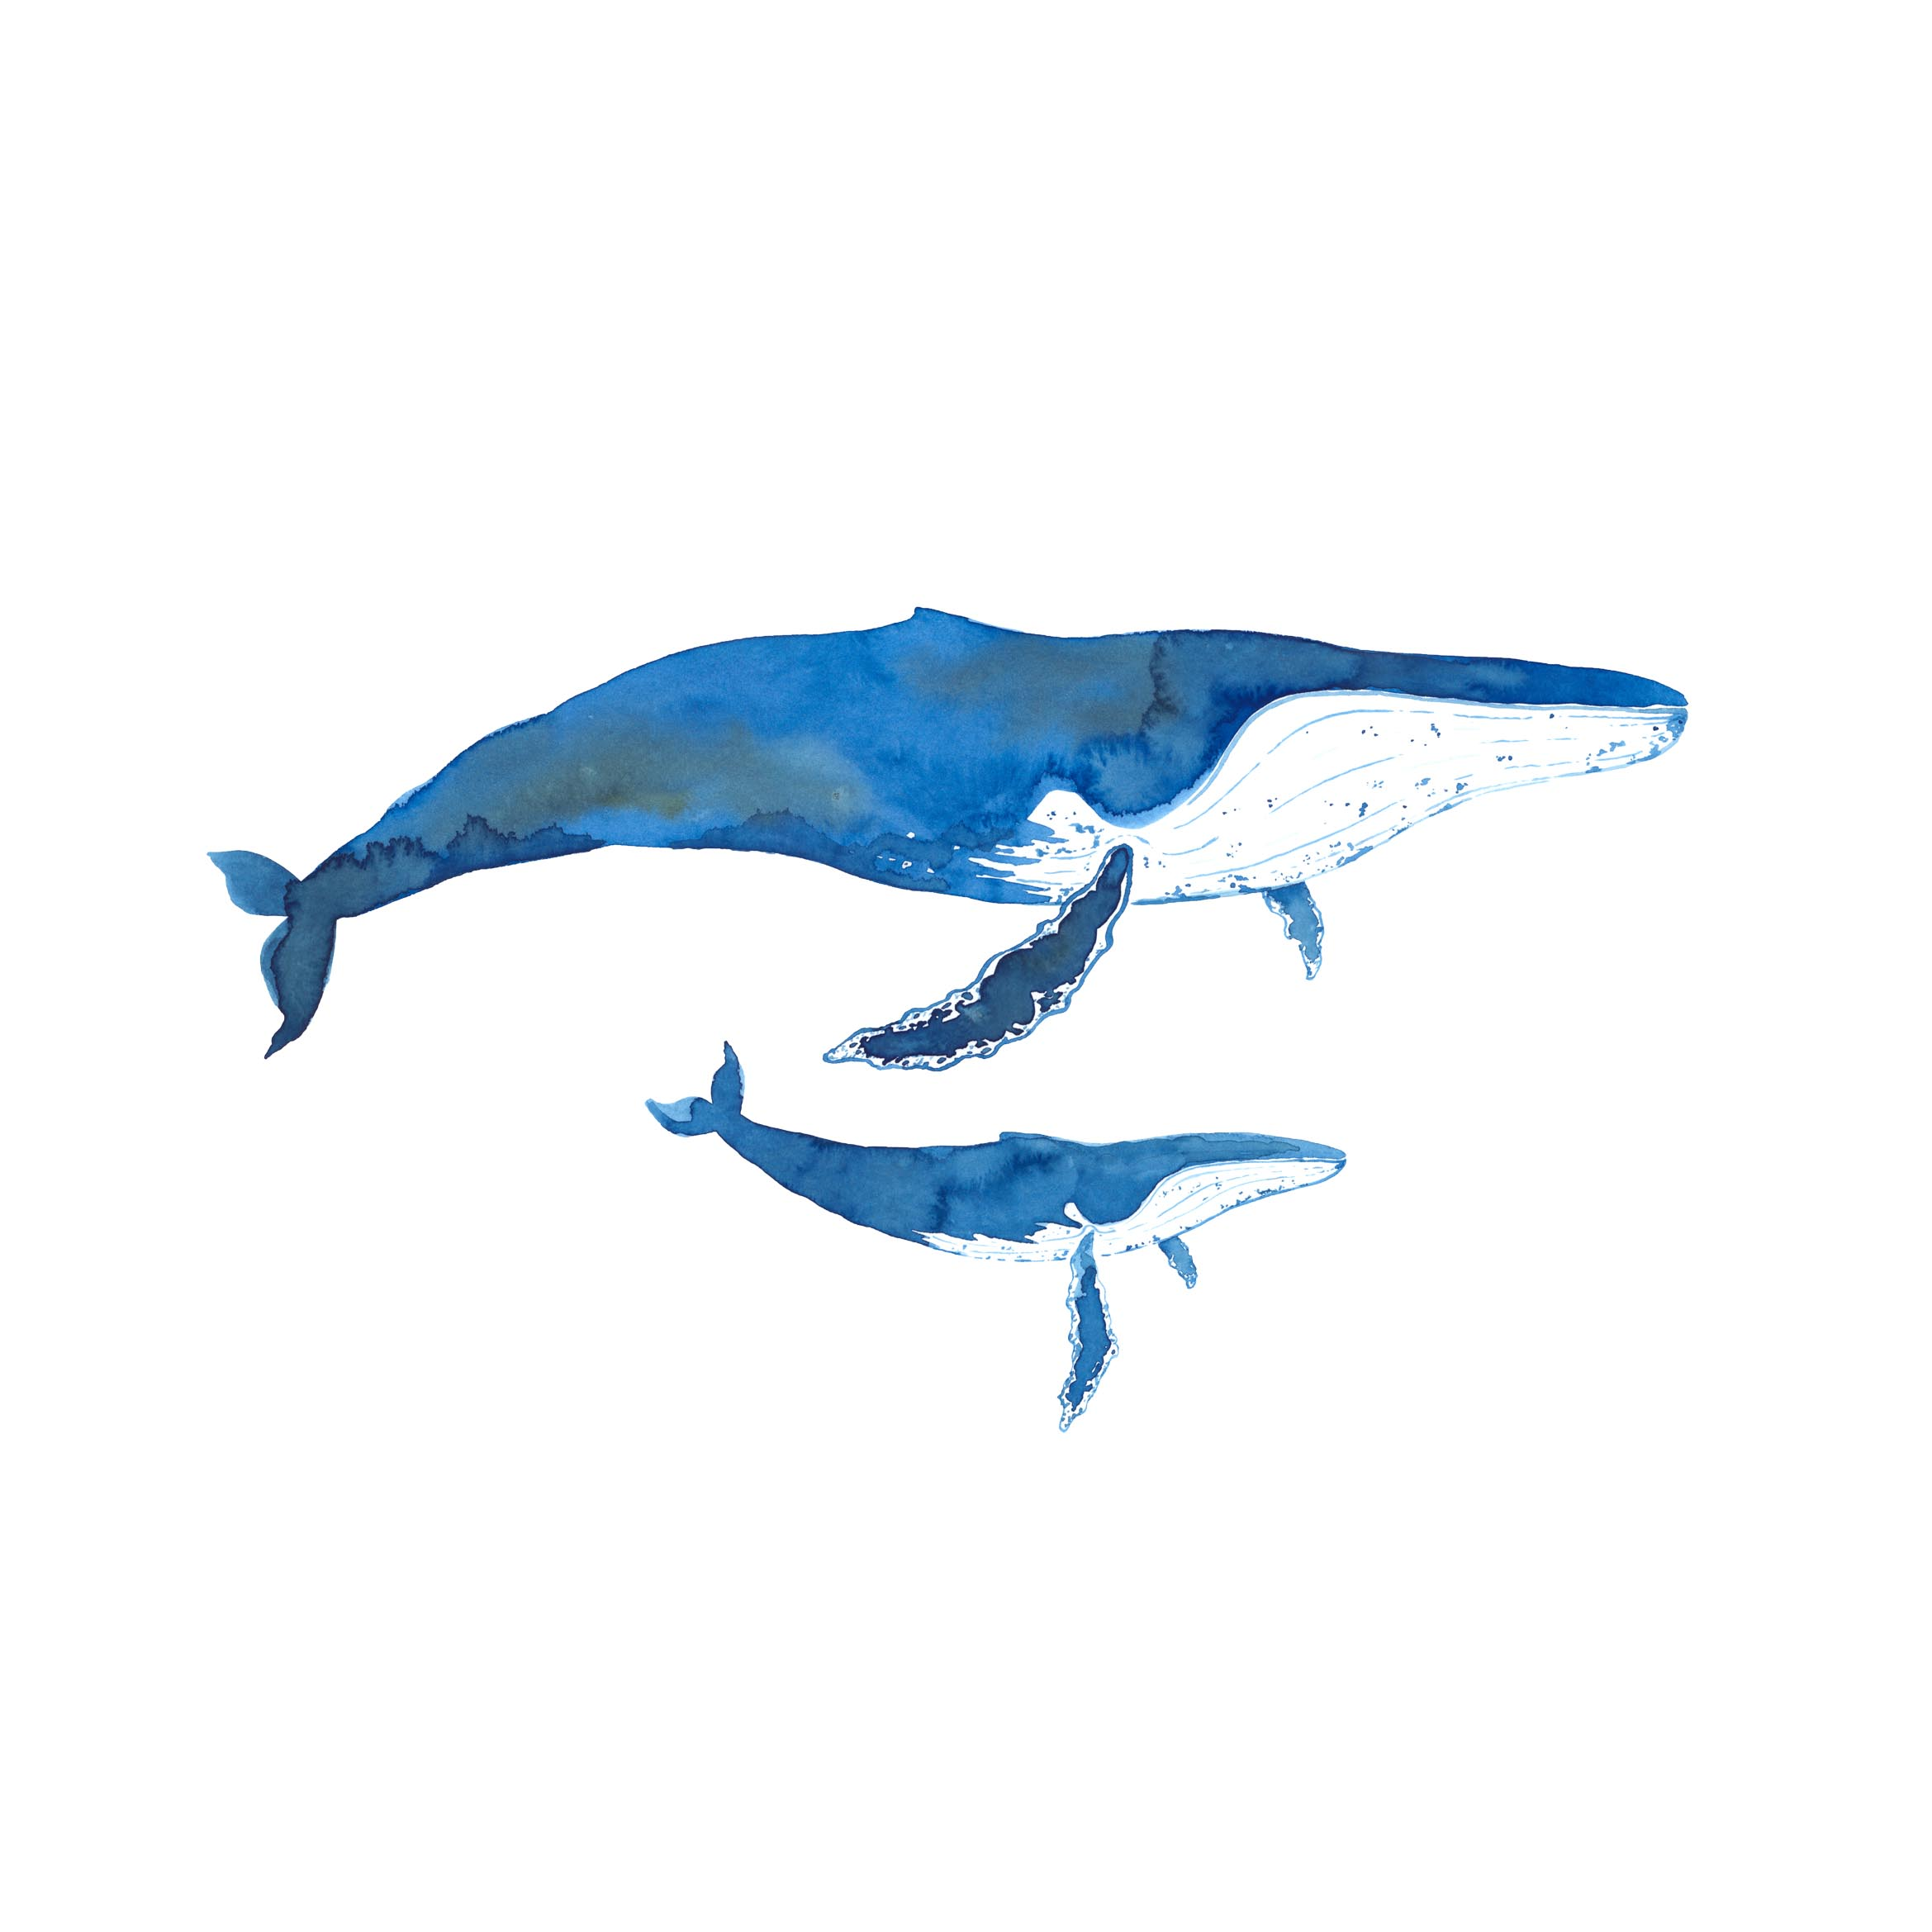 Whale Love -  2017 Watercolour on paper  Limited Print